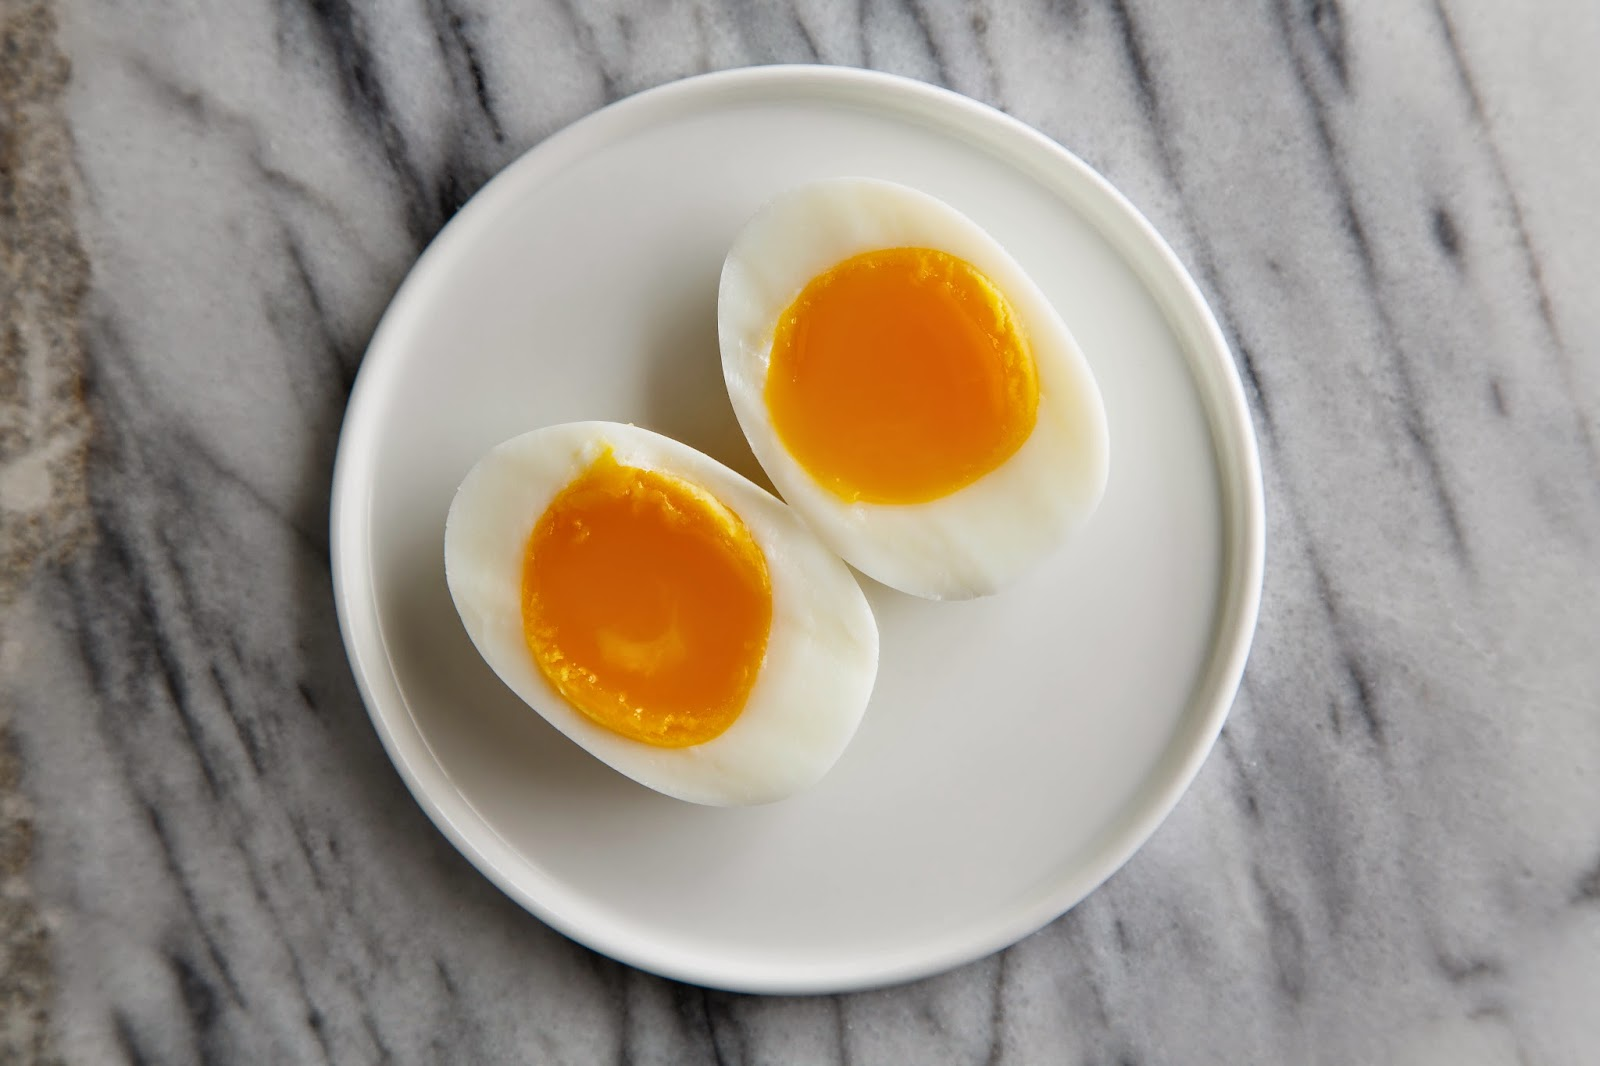 Hungry Cravings: How to Cut a Soft-Boiled Egg in Half